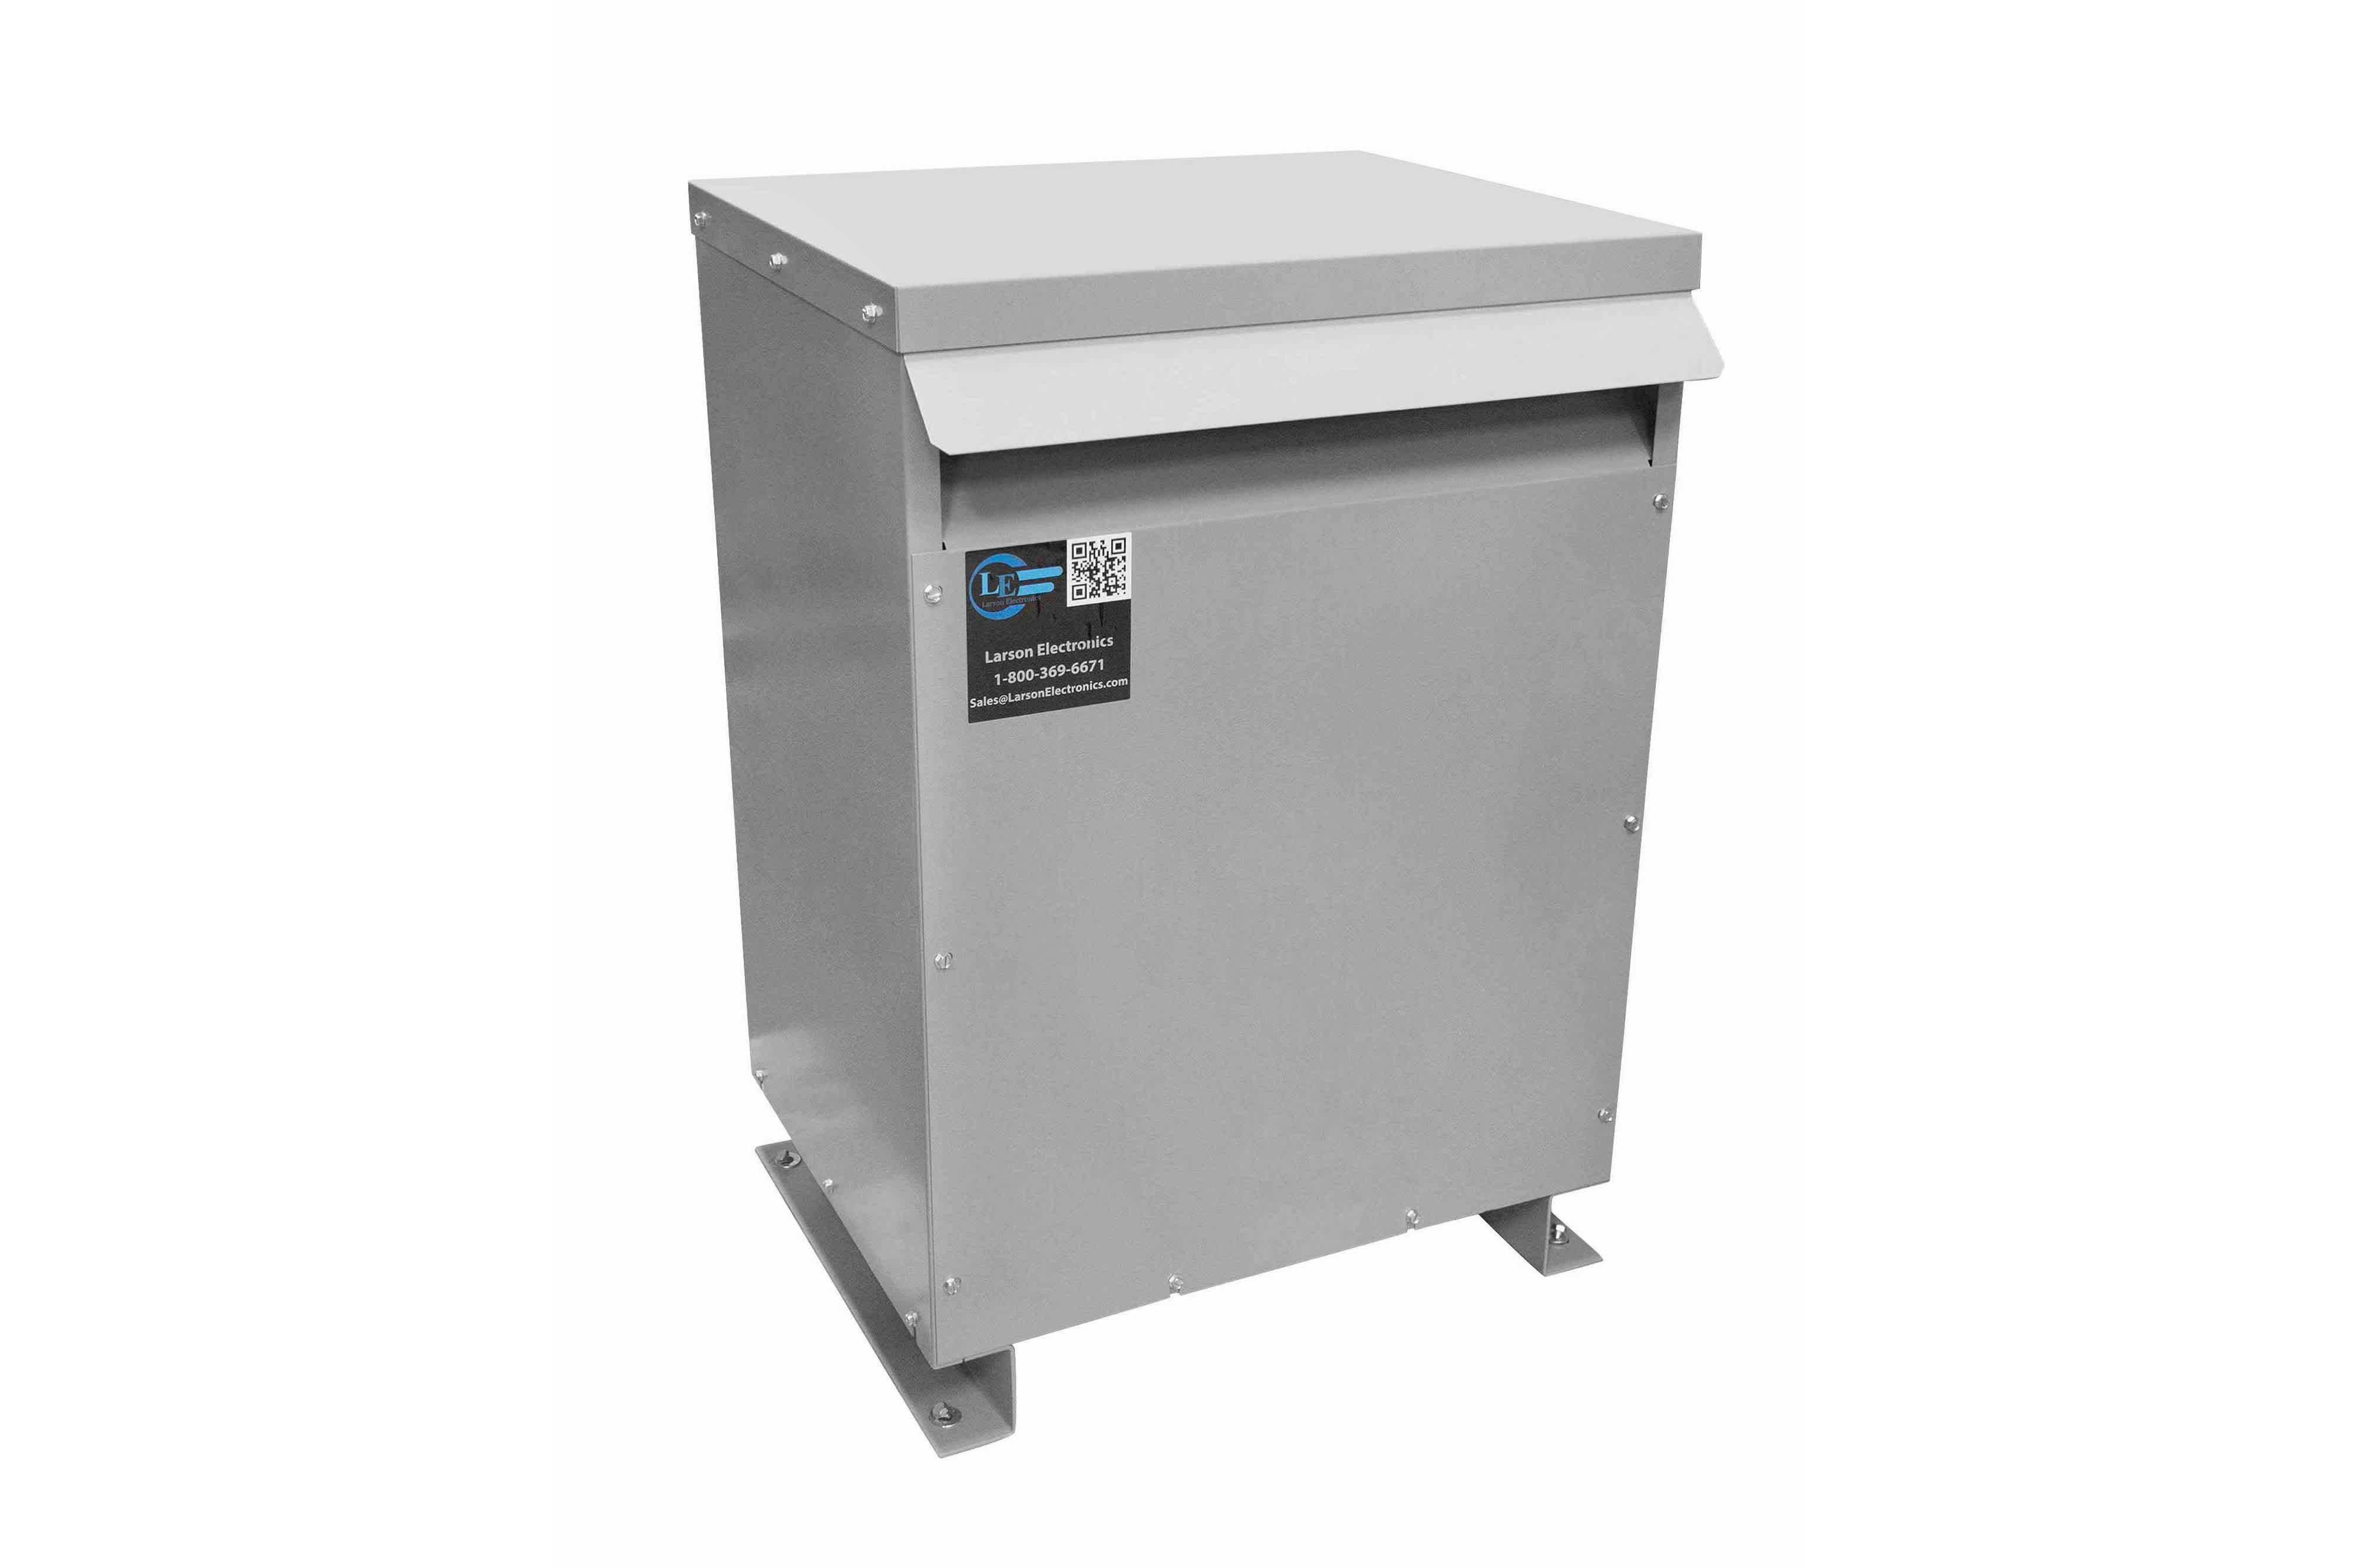 36 kVA 3PH Isolation Transformer, 460V Wye Primary, 415Y/240 Wye-N Secondary, N3R, Ventilated, 60 Hz